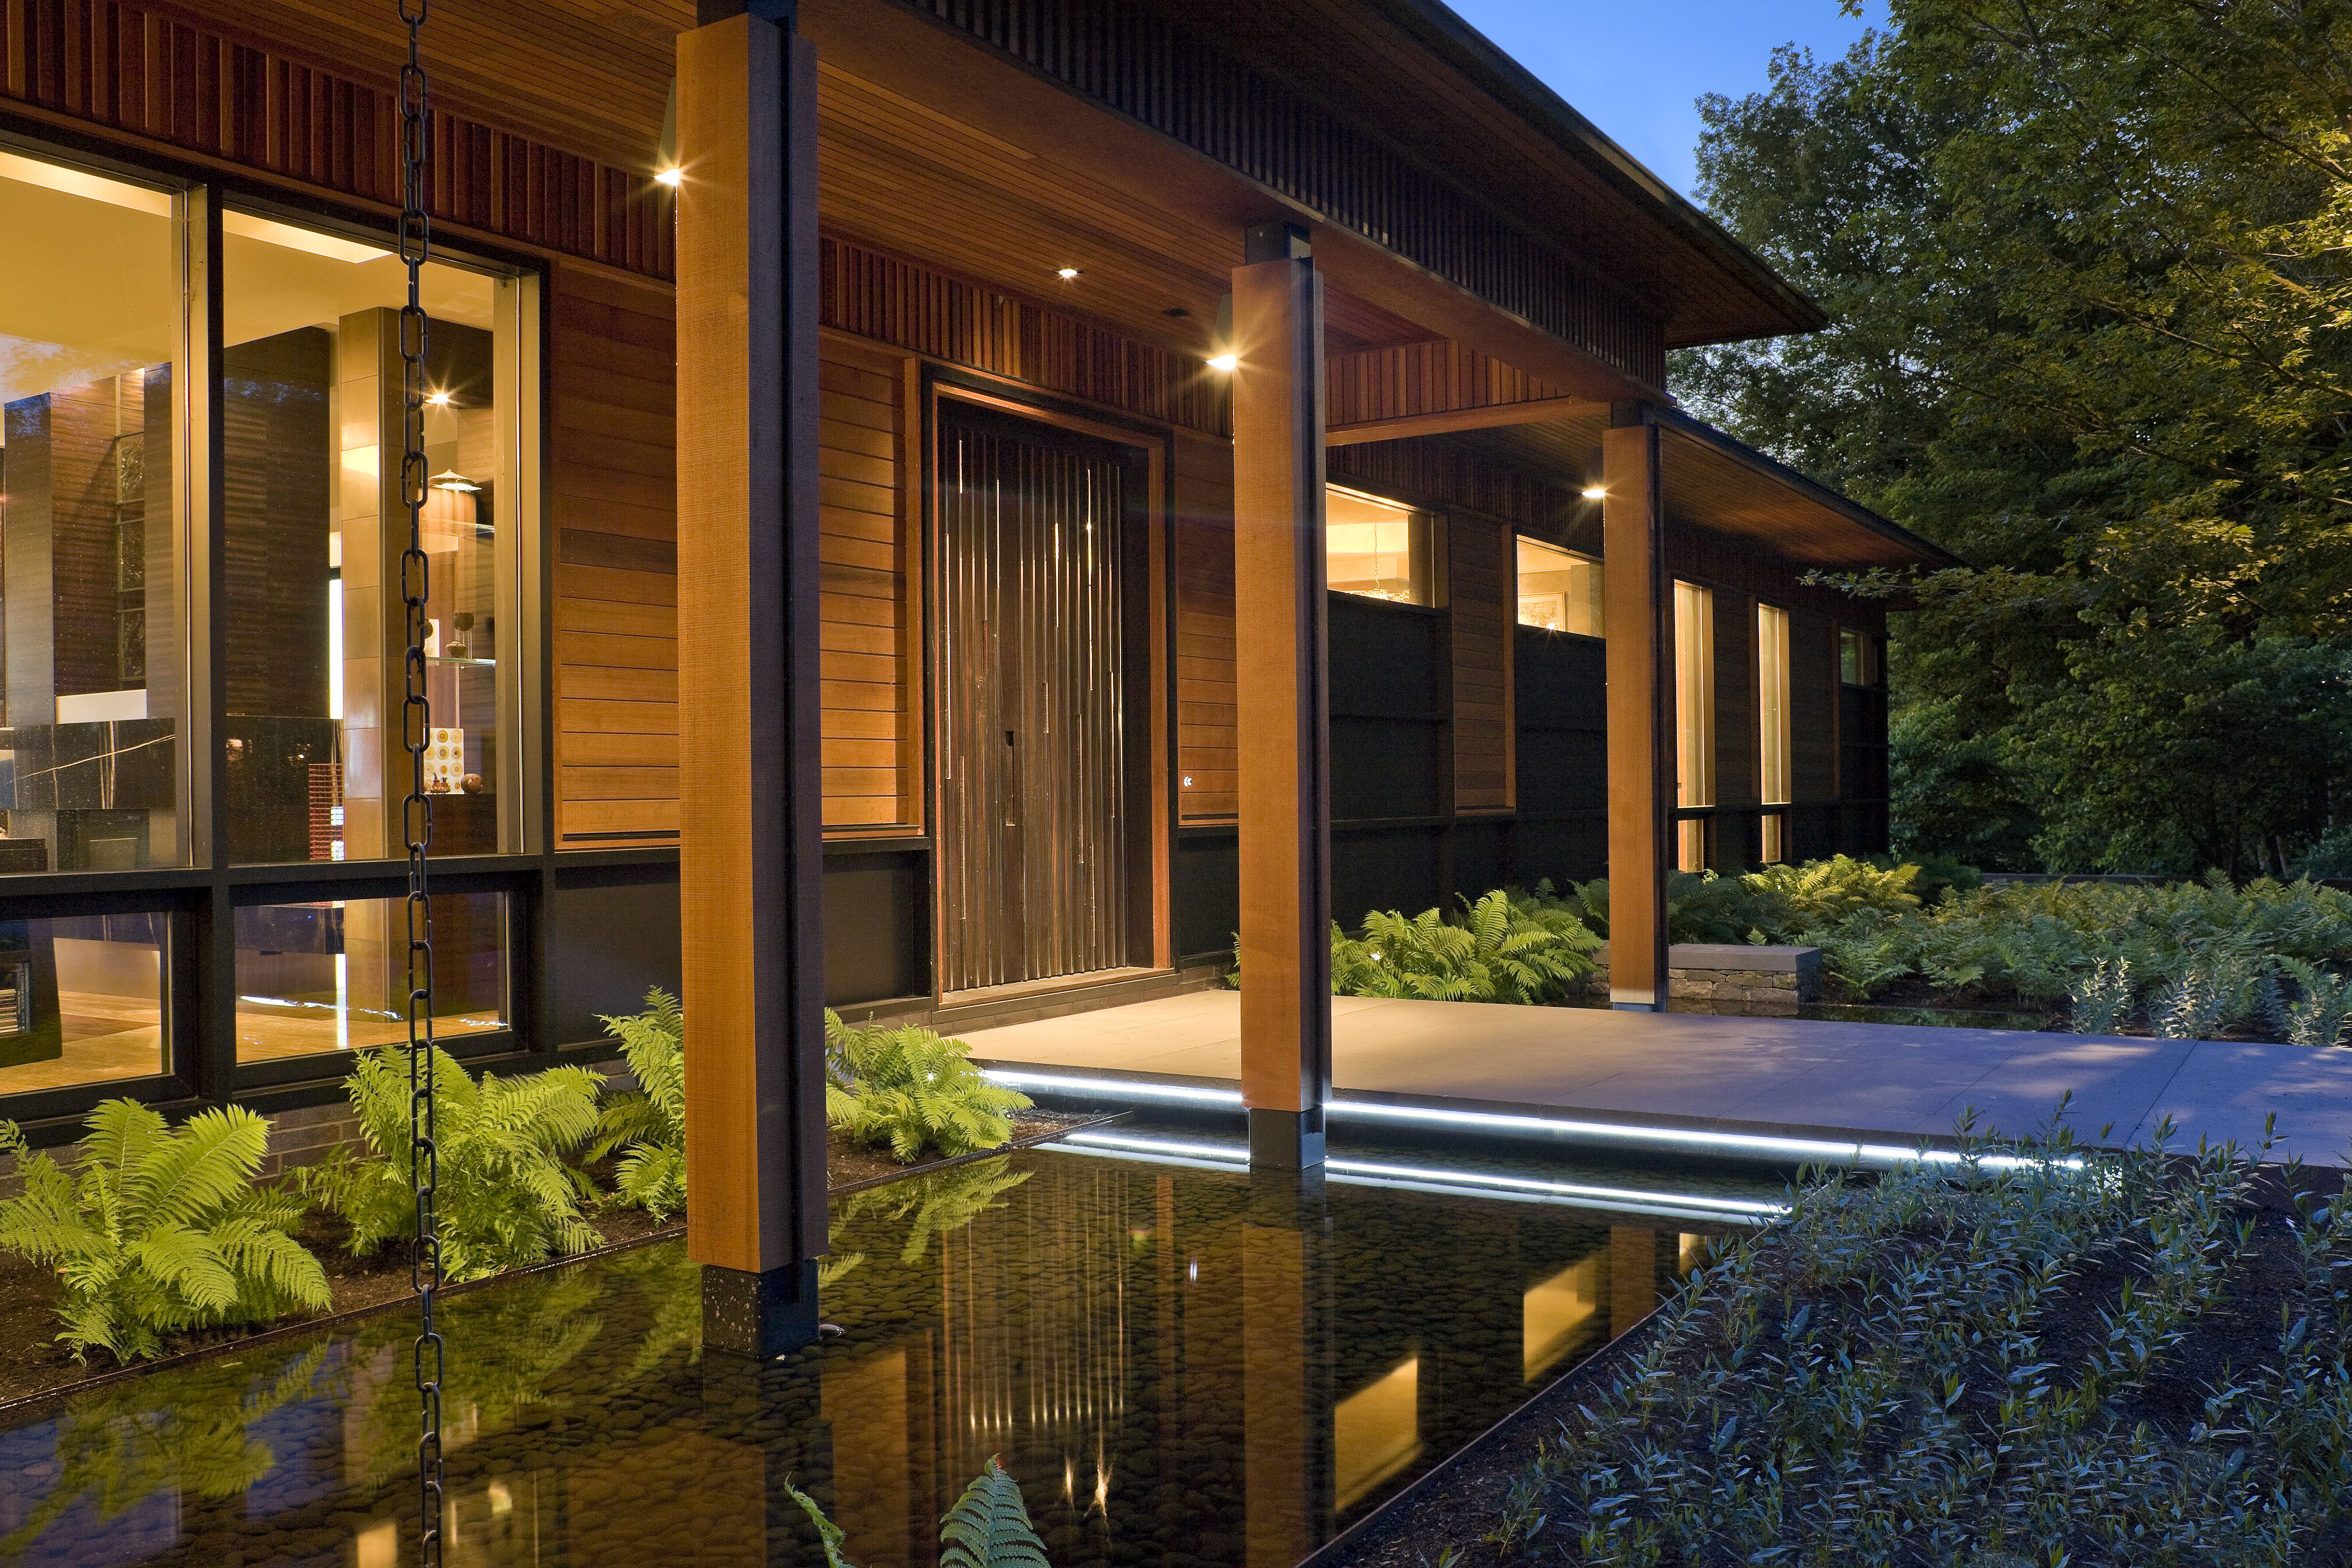 Download Hi-Res Image & ASLA 2012 Professional Awards | Quaker Smith Point Residence